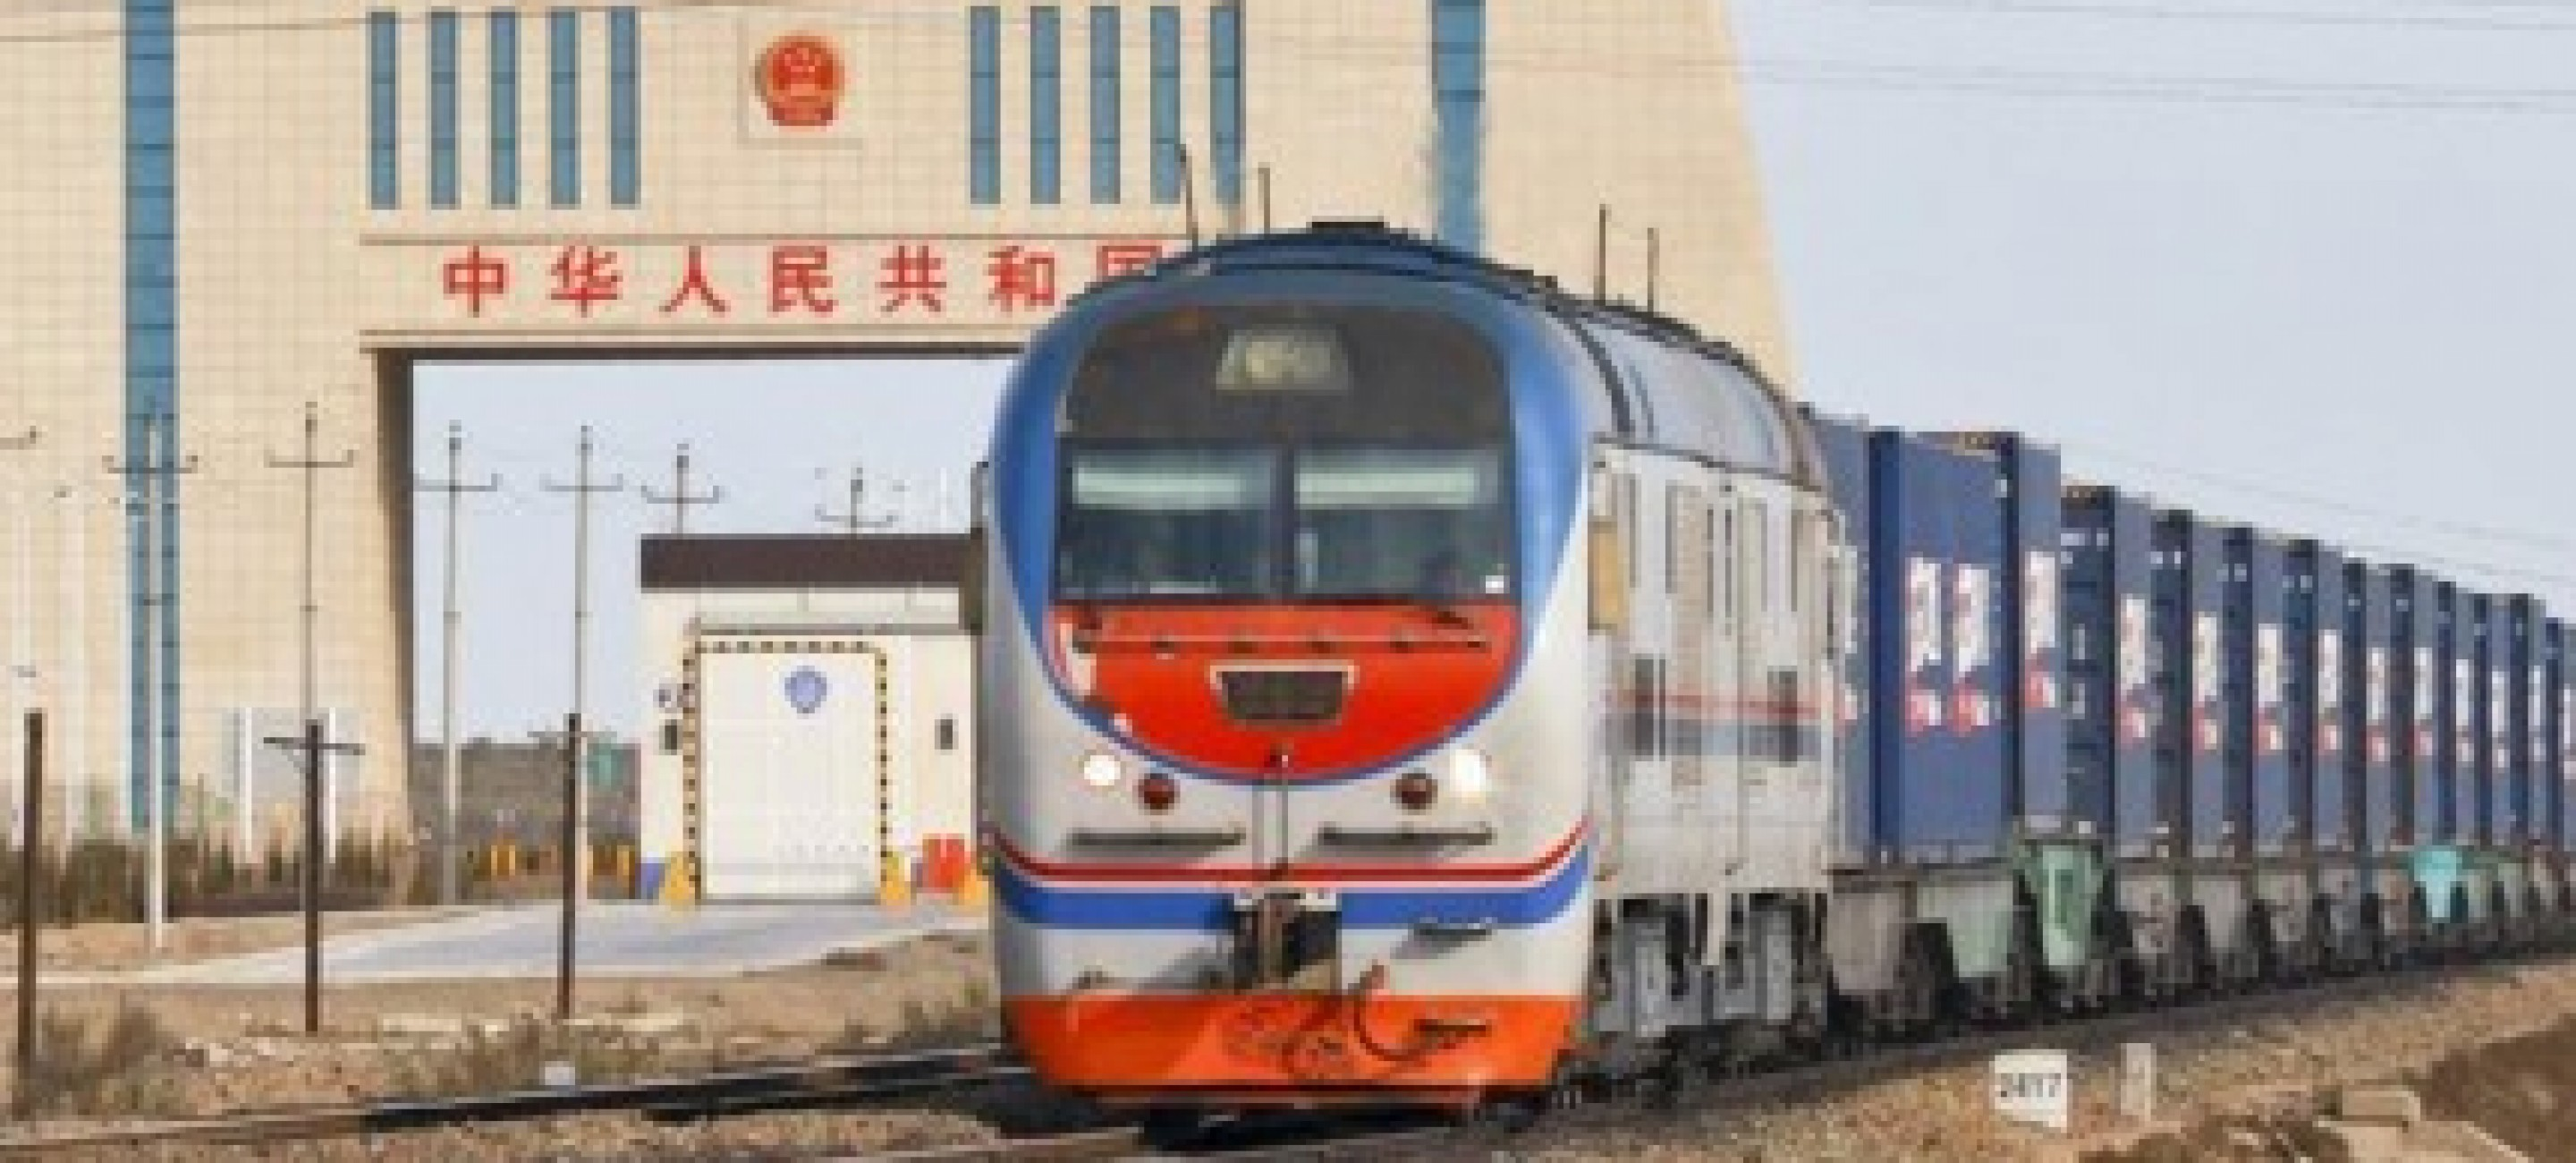 ANOTHER FREIGHT TRAIN HAS BEEN LAUNCHED ON THE NEW ROUTE FROM CHINA TO IRAN